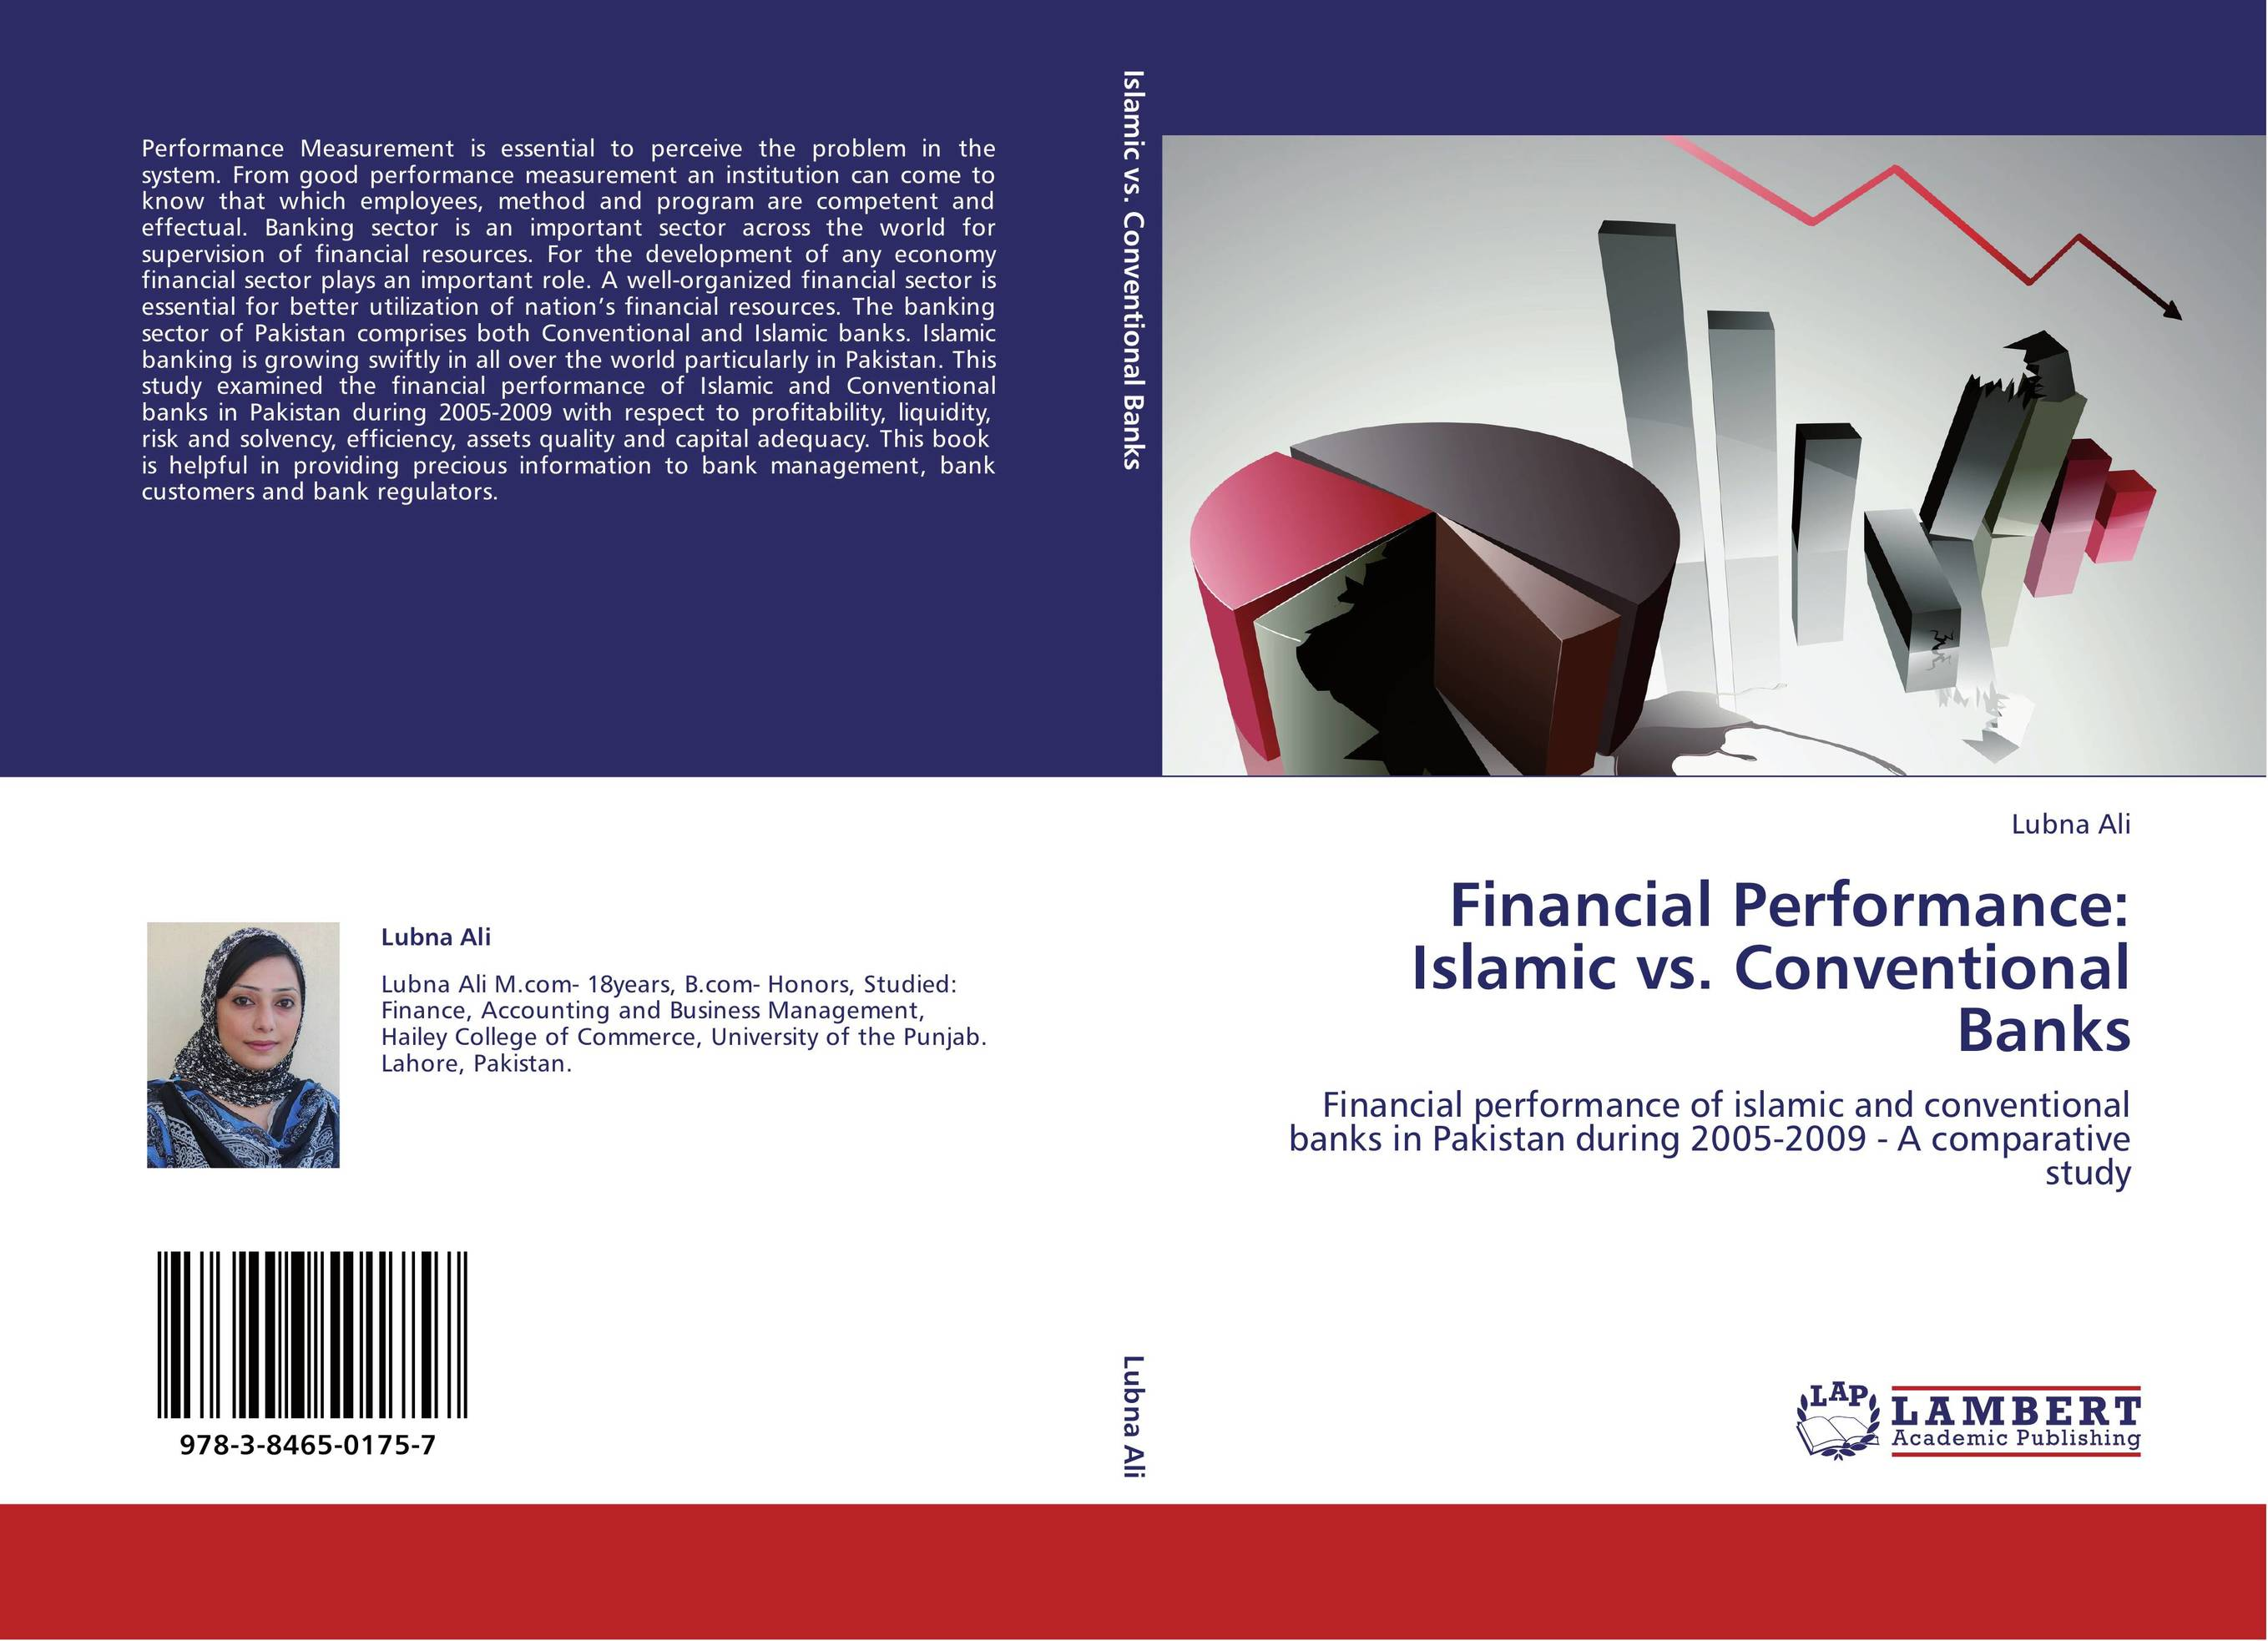 managerial communication in the banking sector of pakistan management essay Issn : 2278-8387 vol 2 (1), 2013 bank marketing mix: new stretegy in today banking sector mr anil kumar asst professor, department of management studies & research cbs group of institutions, jhajjar (haryana) email: anilror@gmailcom mobile no +91-8510811335/9992226428 abstract bank marketing in general and customer relationship management.